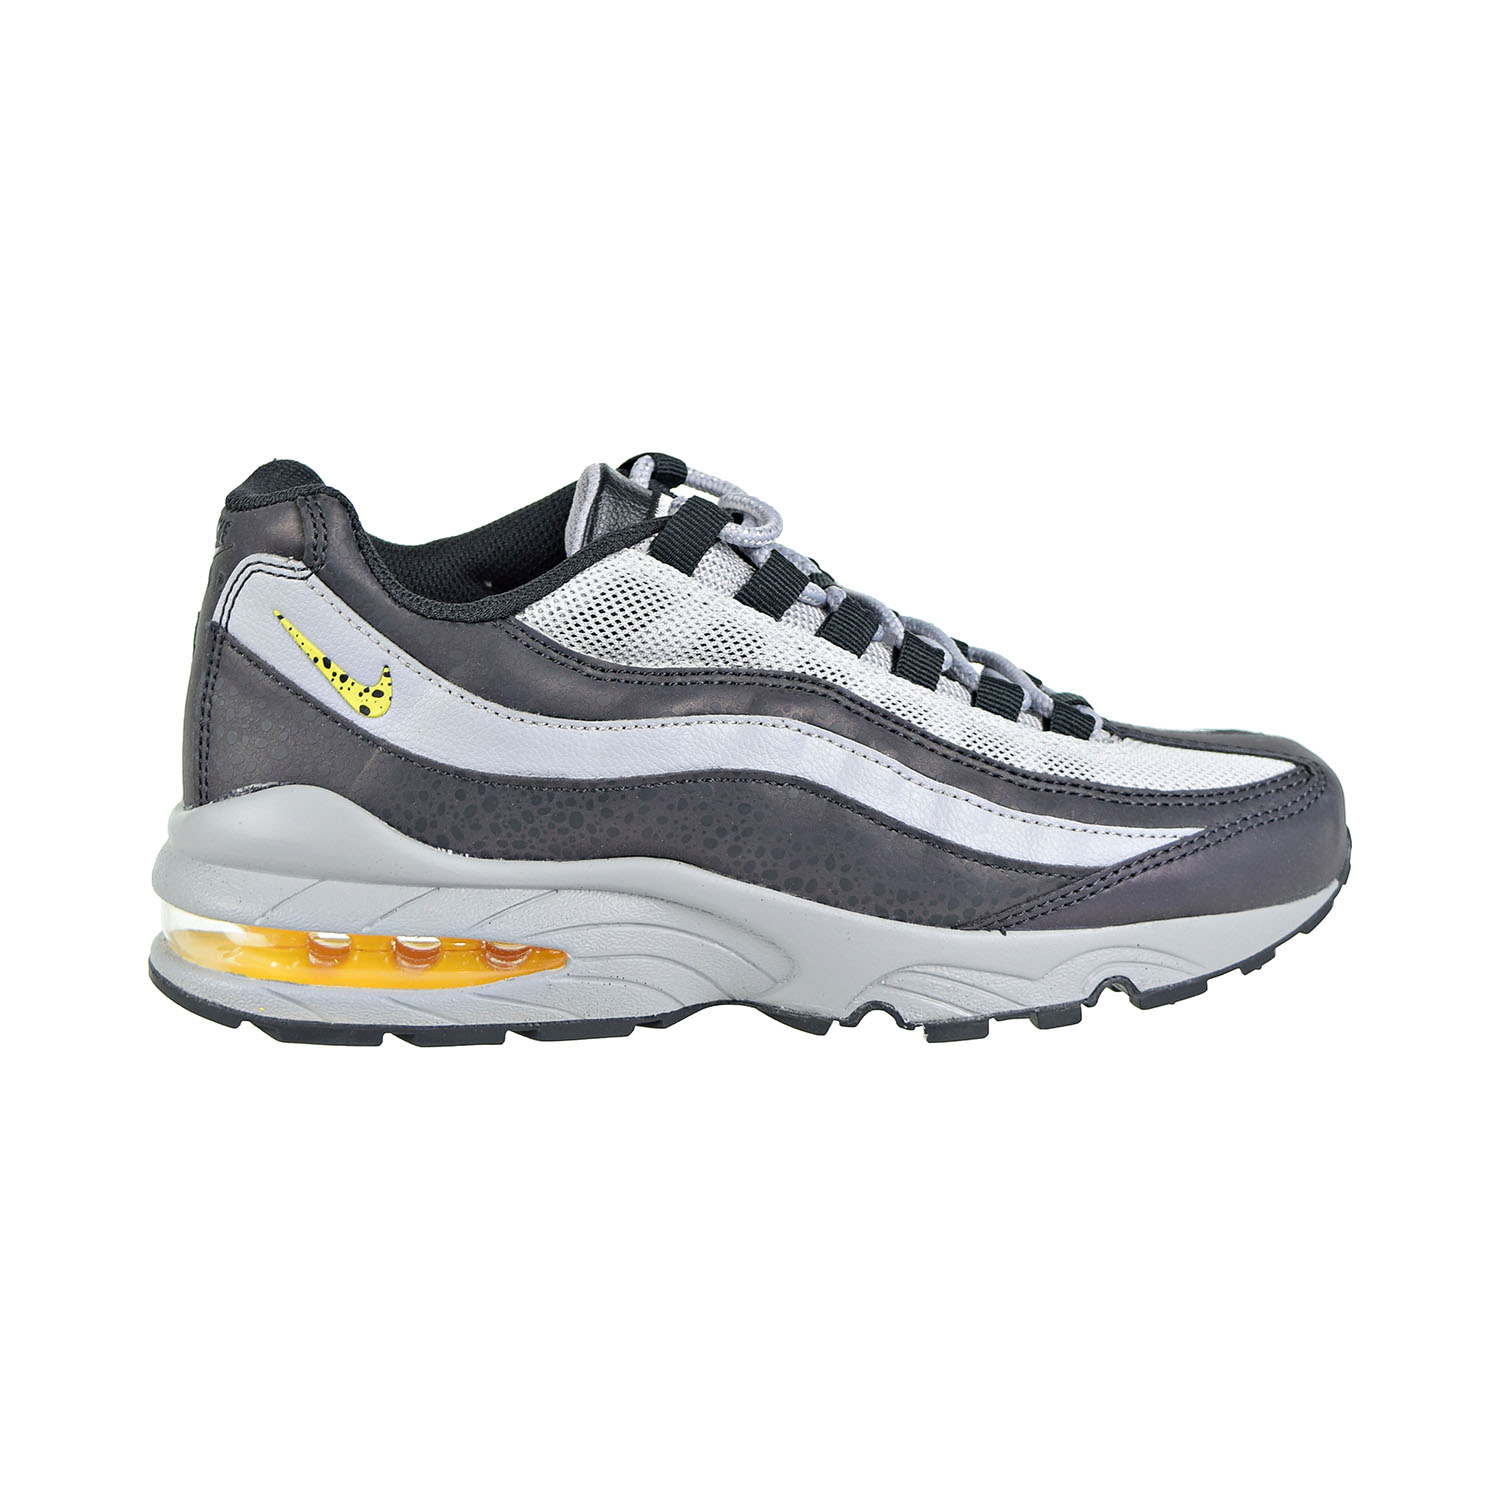 0f572d039 Details about Nike Air Max 95 Big Kids' Shoes Off Noir/Dynamic Yellow  BV1245-001